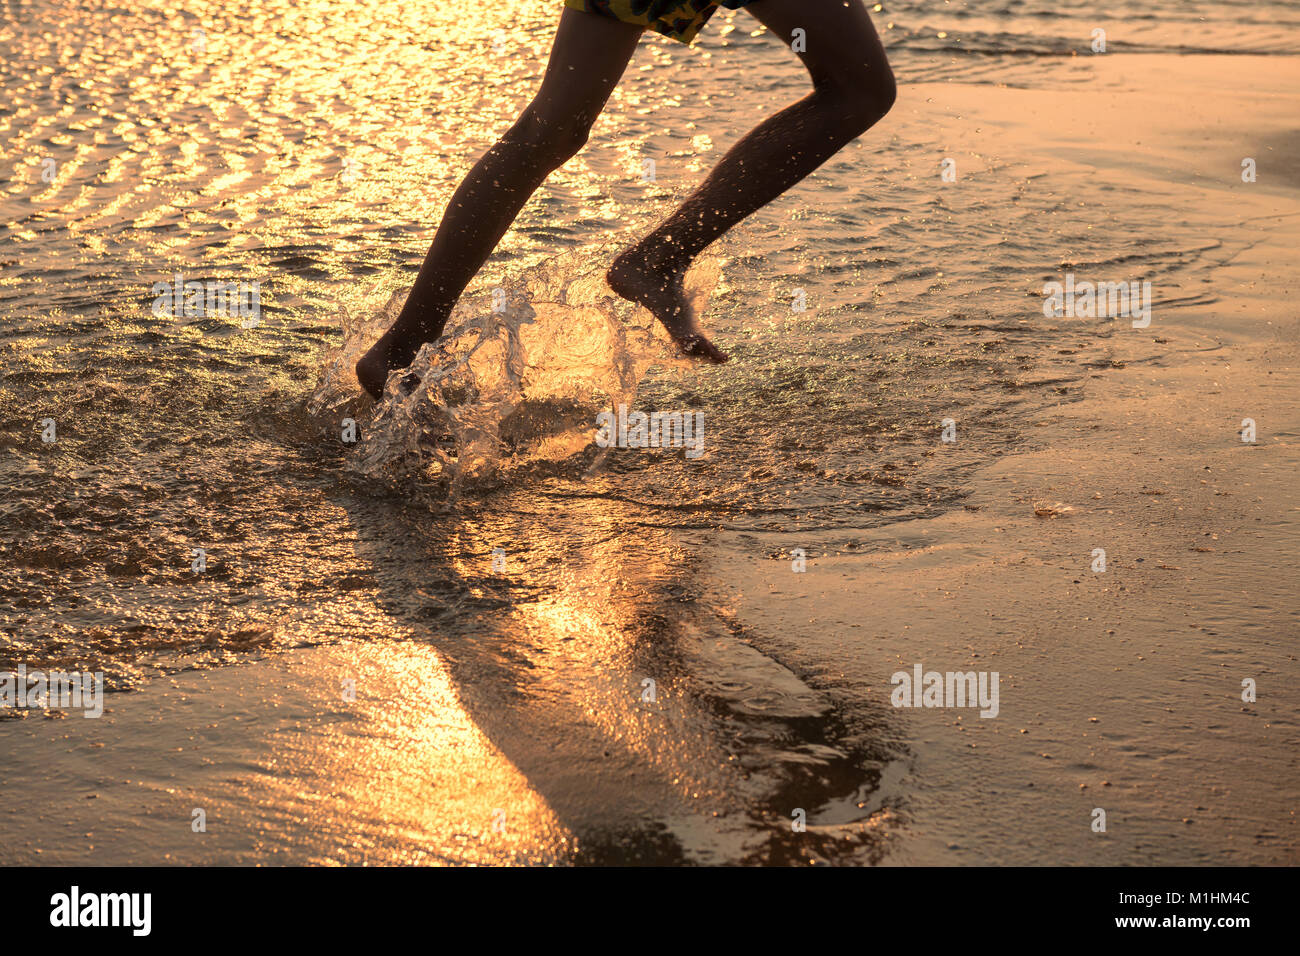 girl boy run on beach stock photos girl boy run on beach stock images alamy. Black Bedroom Furniture Sets. Home Design Ideas